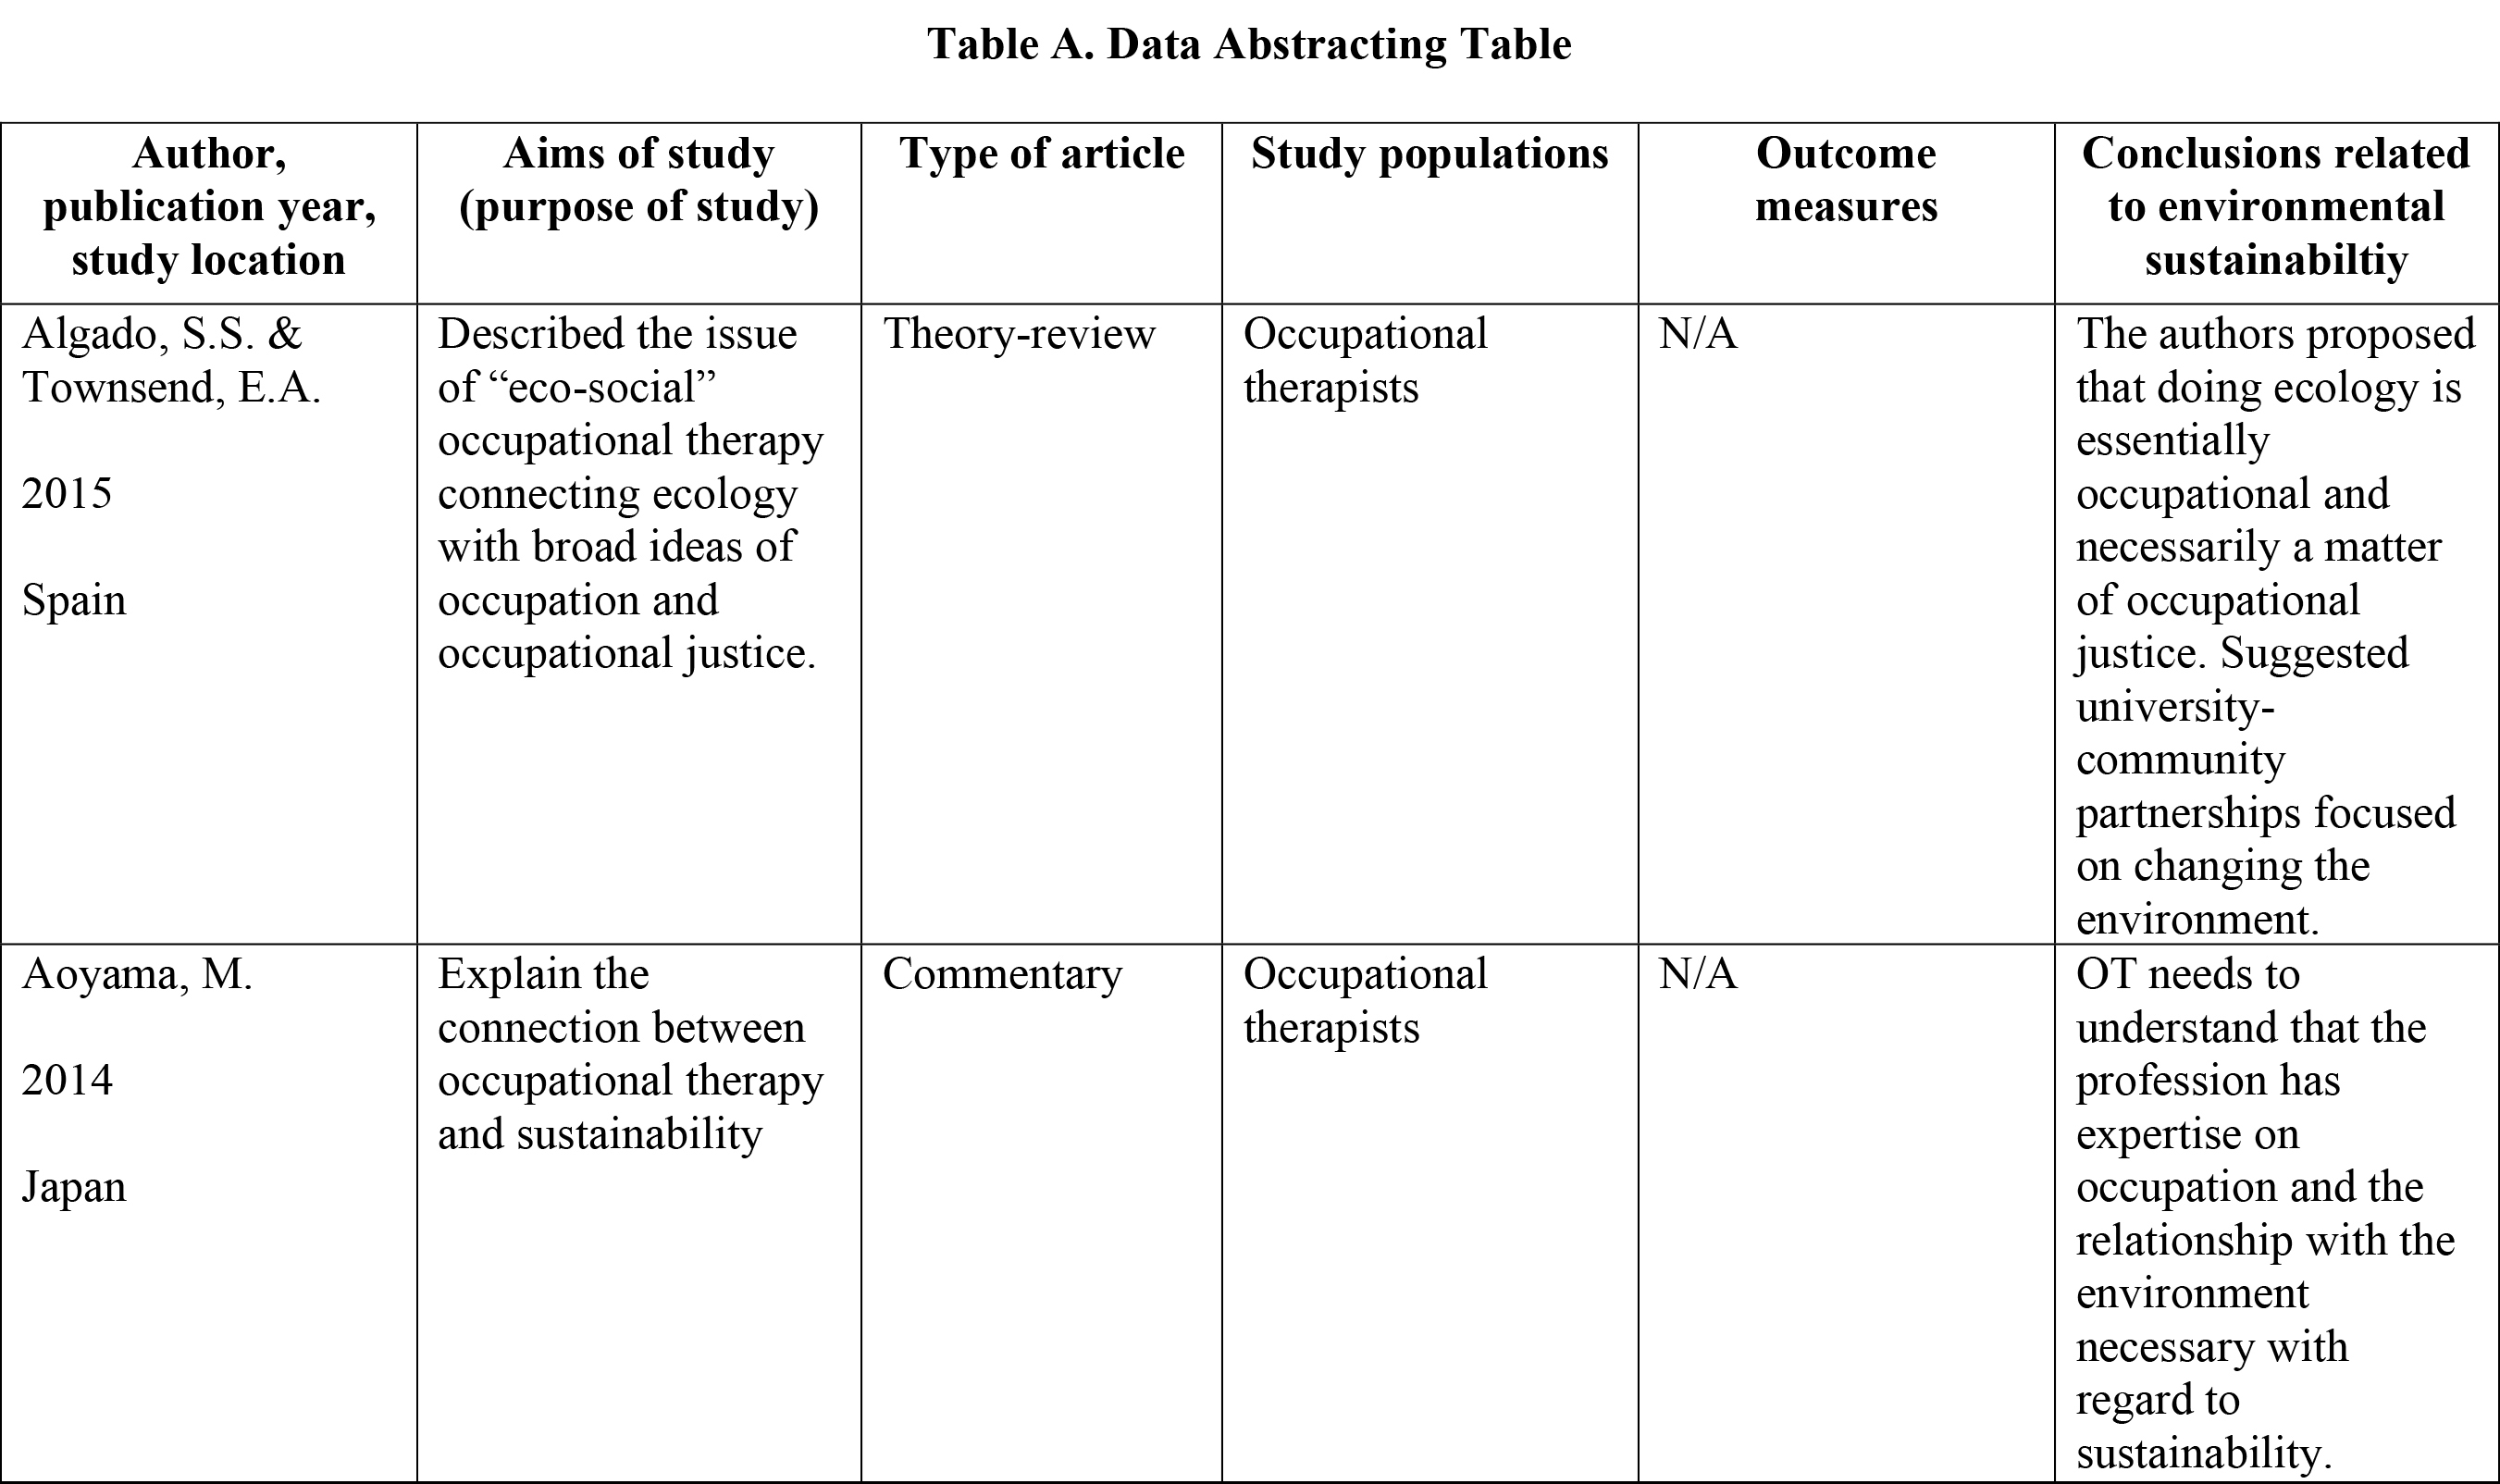 Data Abstracting Table